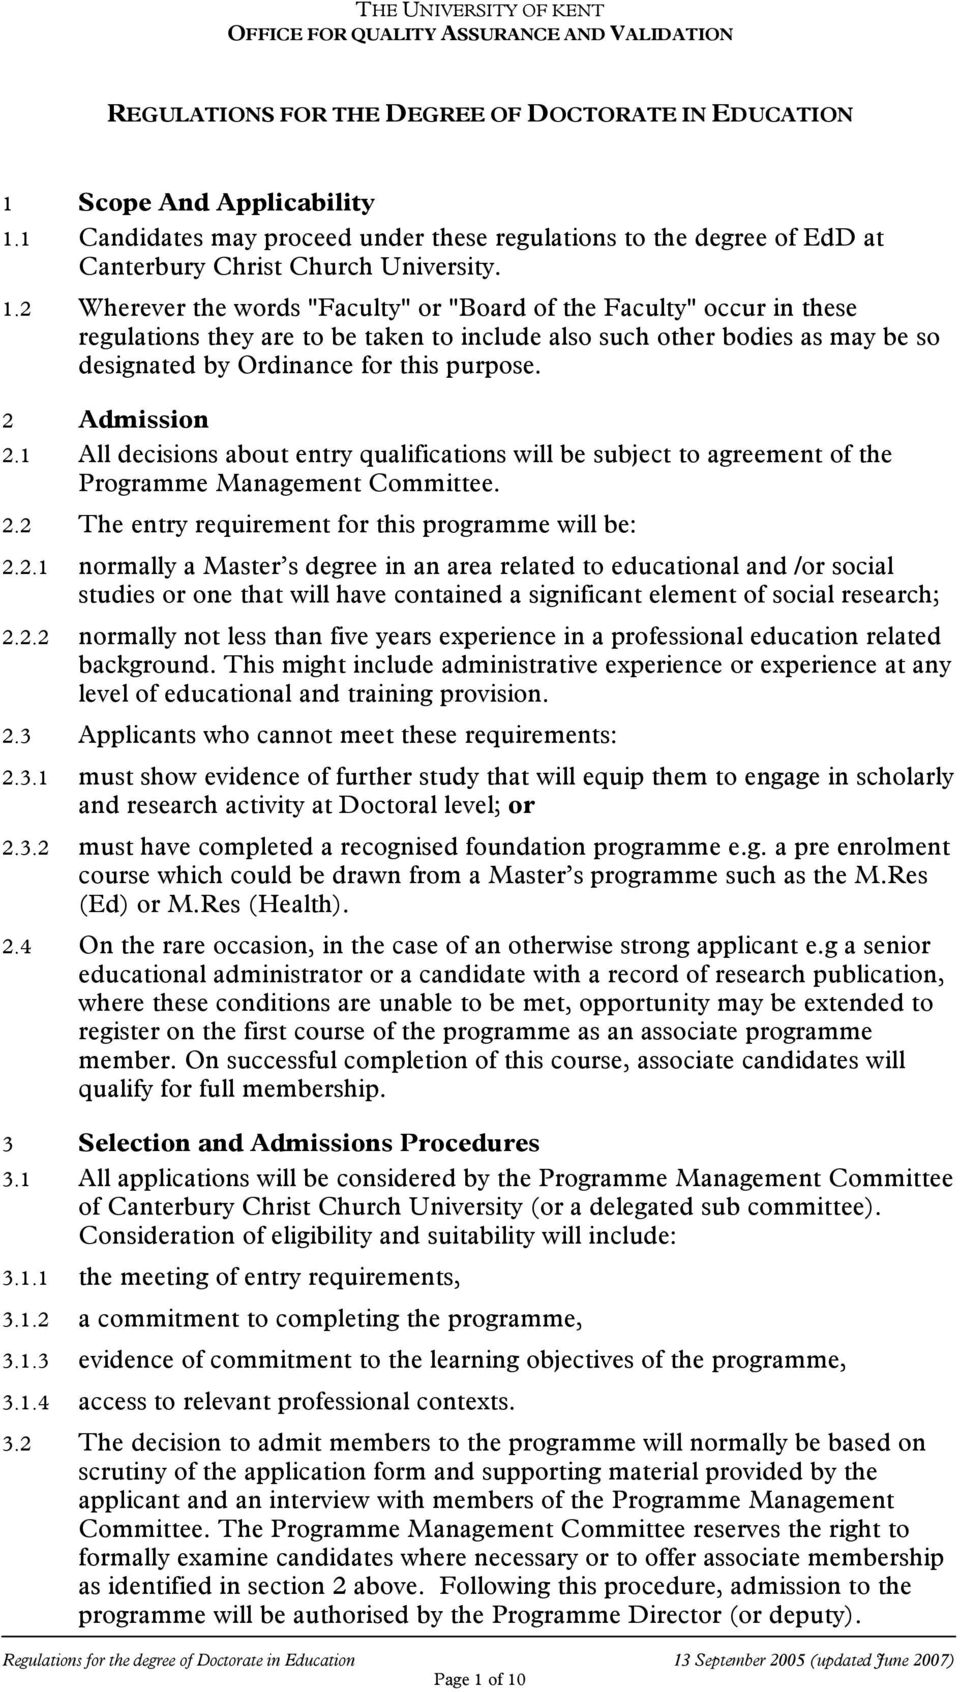 1 Candidates may proceed under these regulations to the degree of EdD at Canterbury Christ Church University. 1.